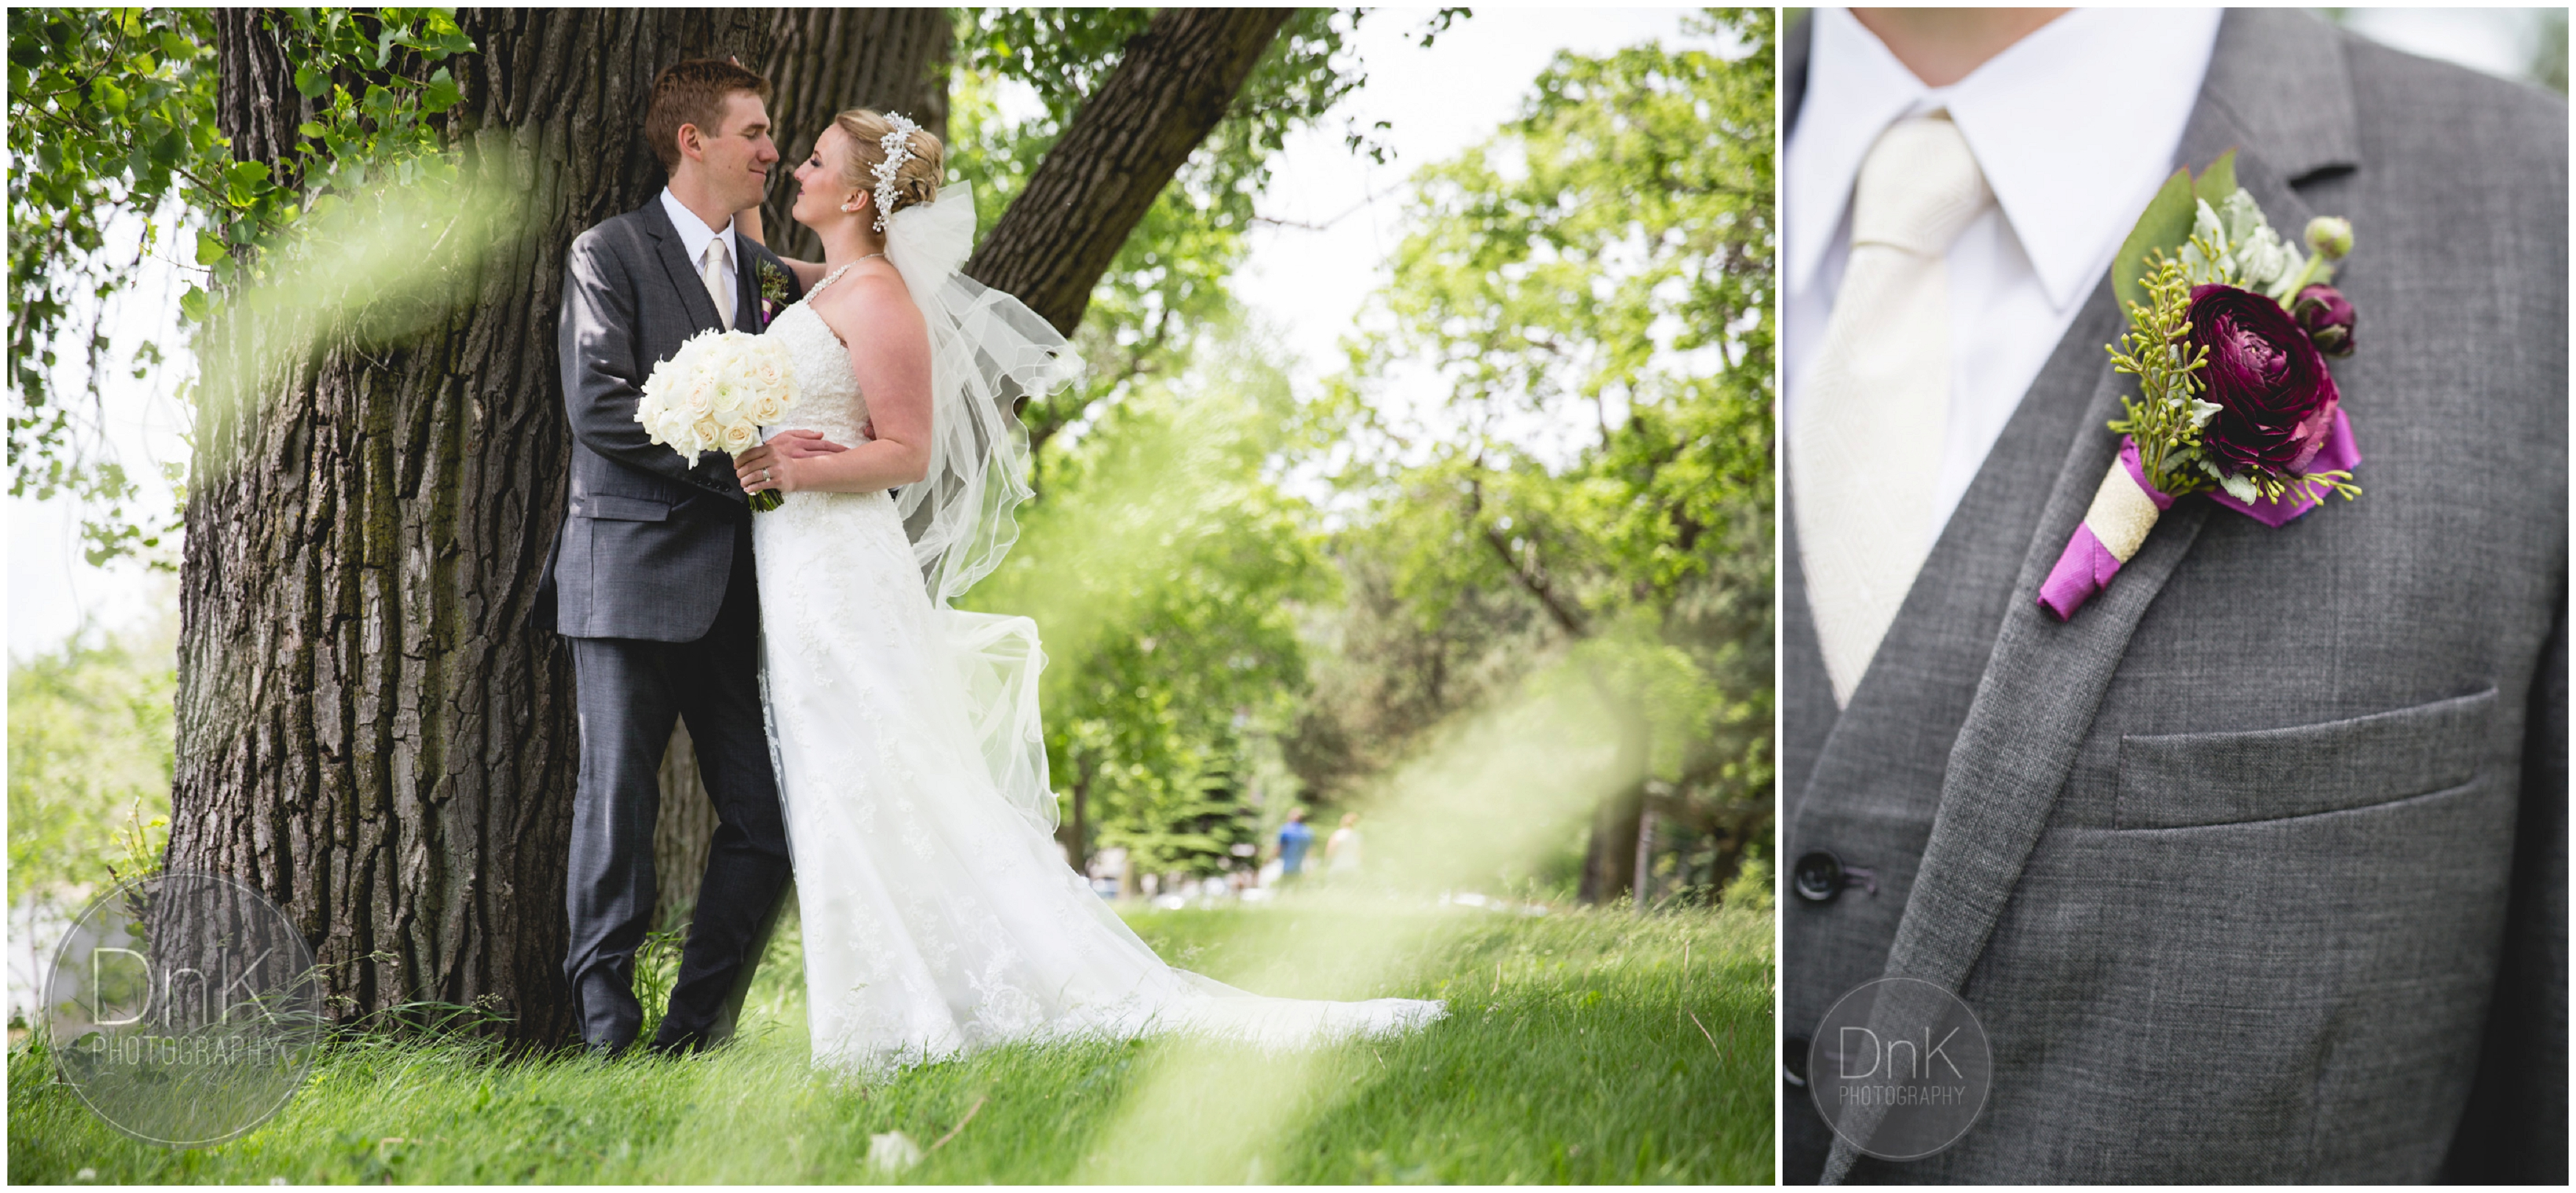 13- Outdoor Wedding Pictures